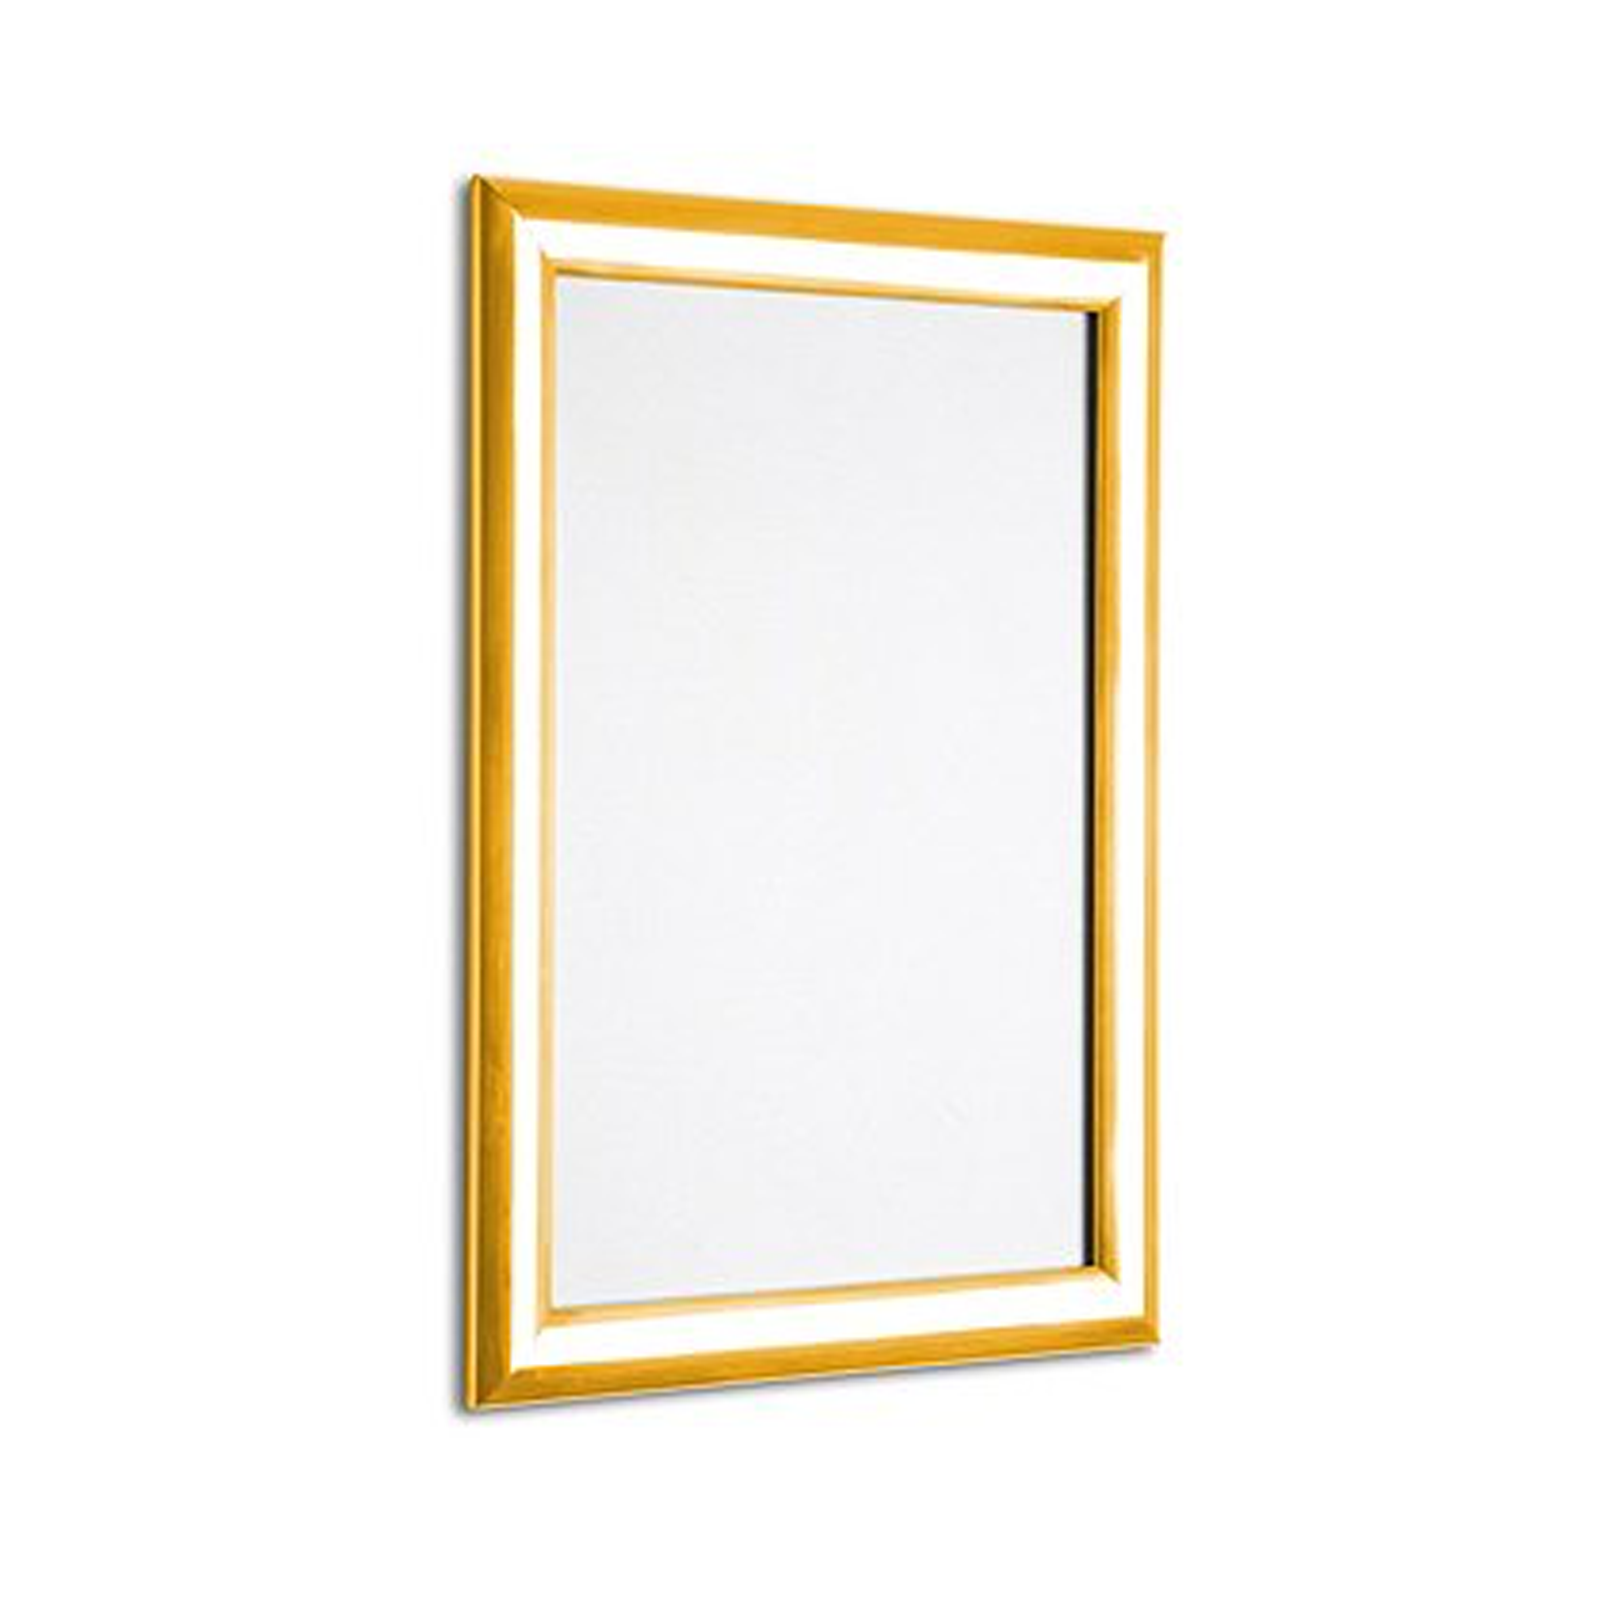 Polished Gold 25mm Poster Display Snap Frames , Catersigns Limited